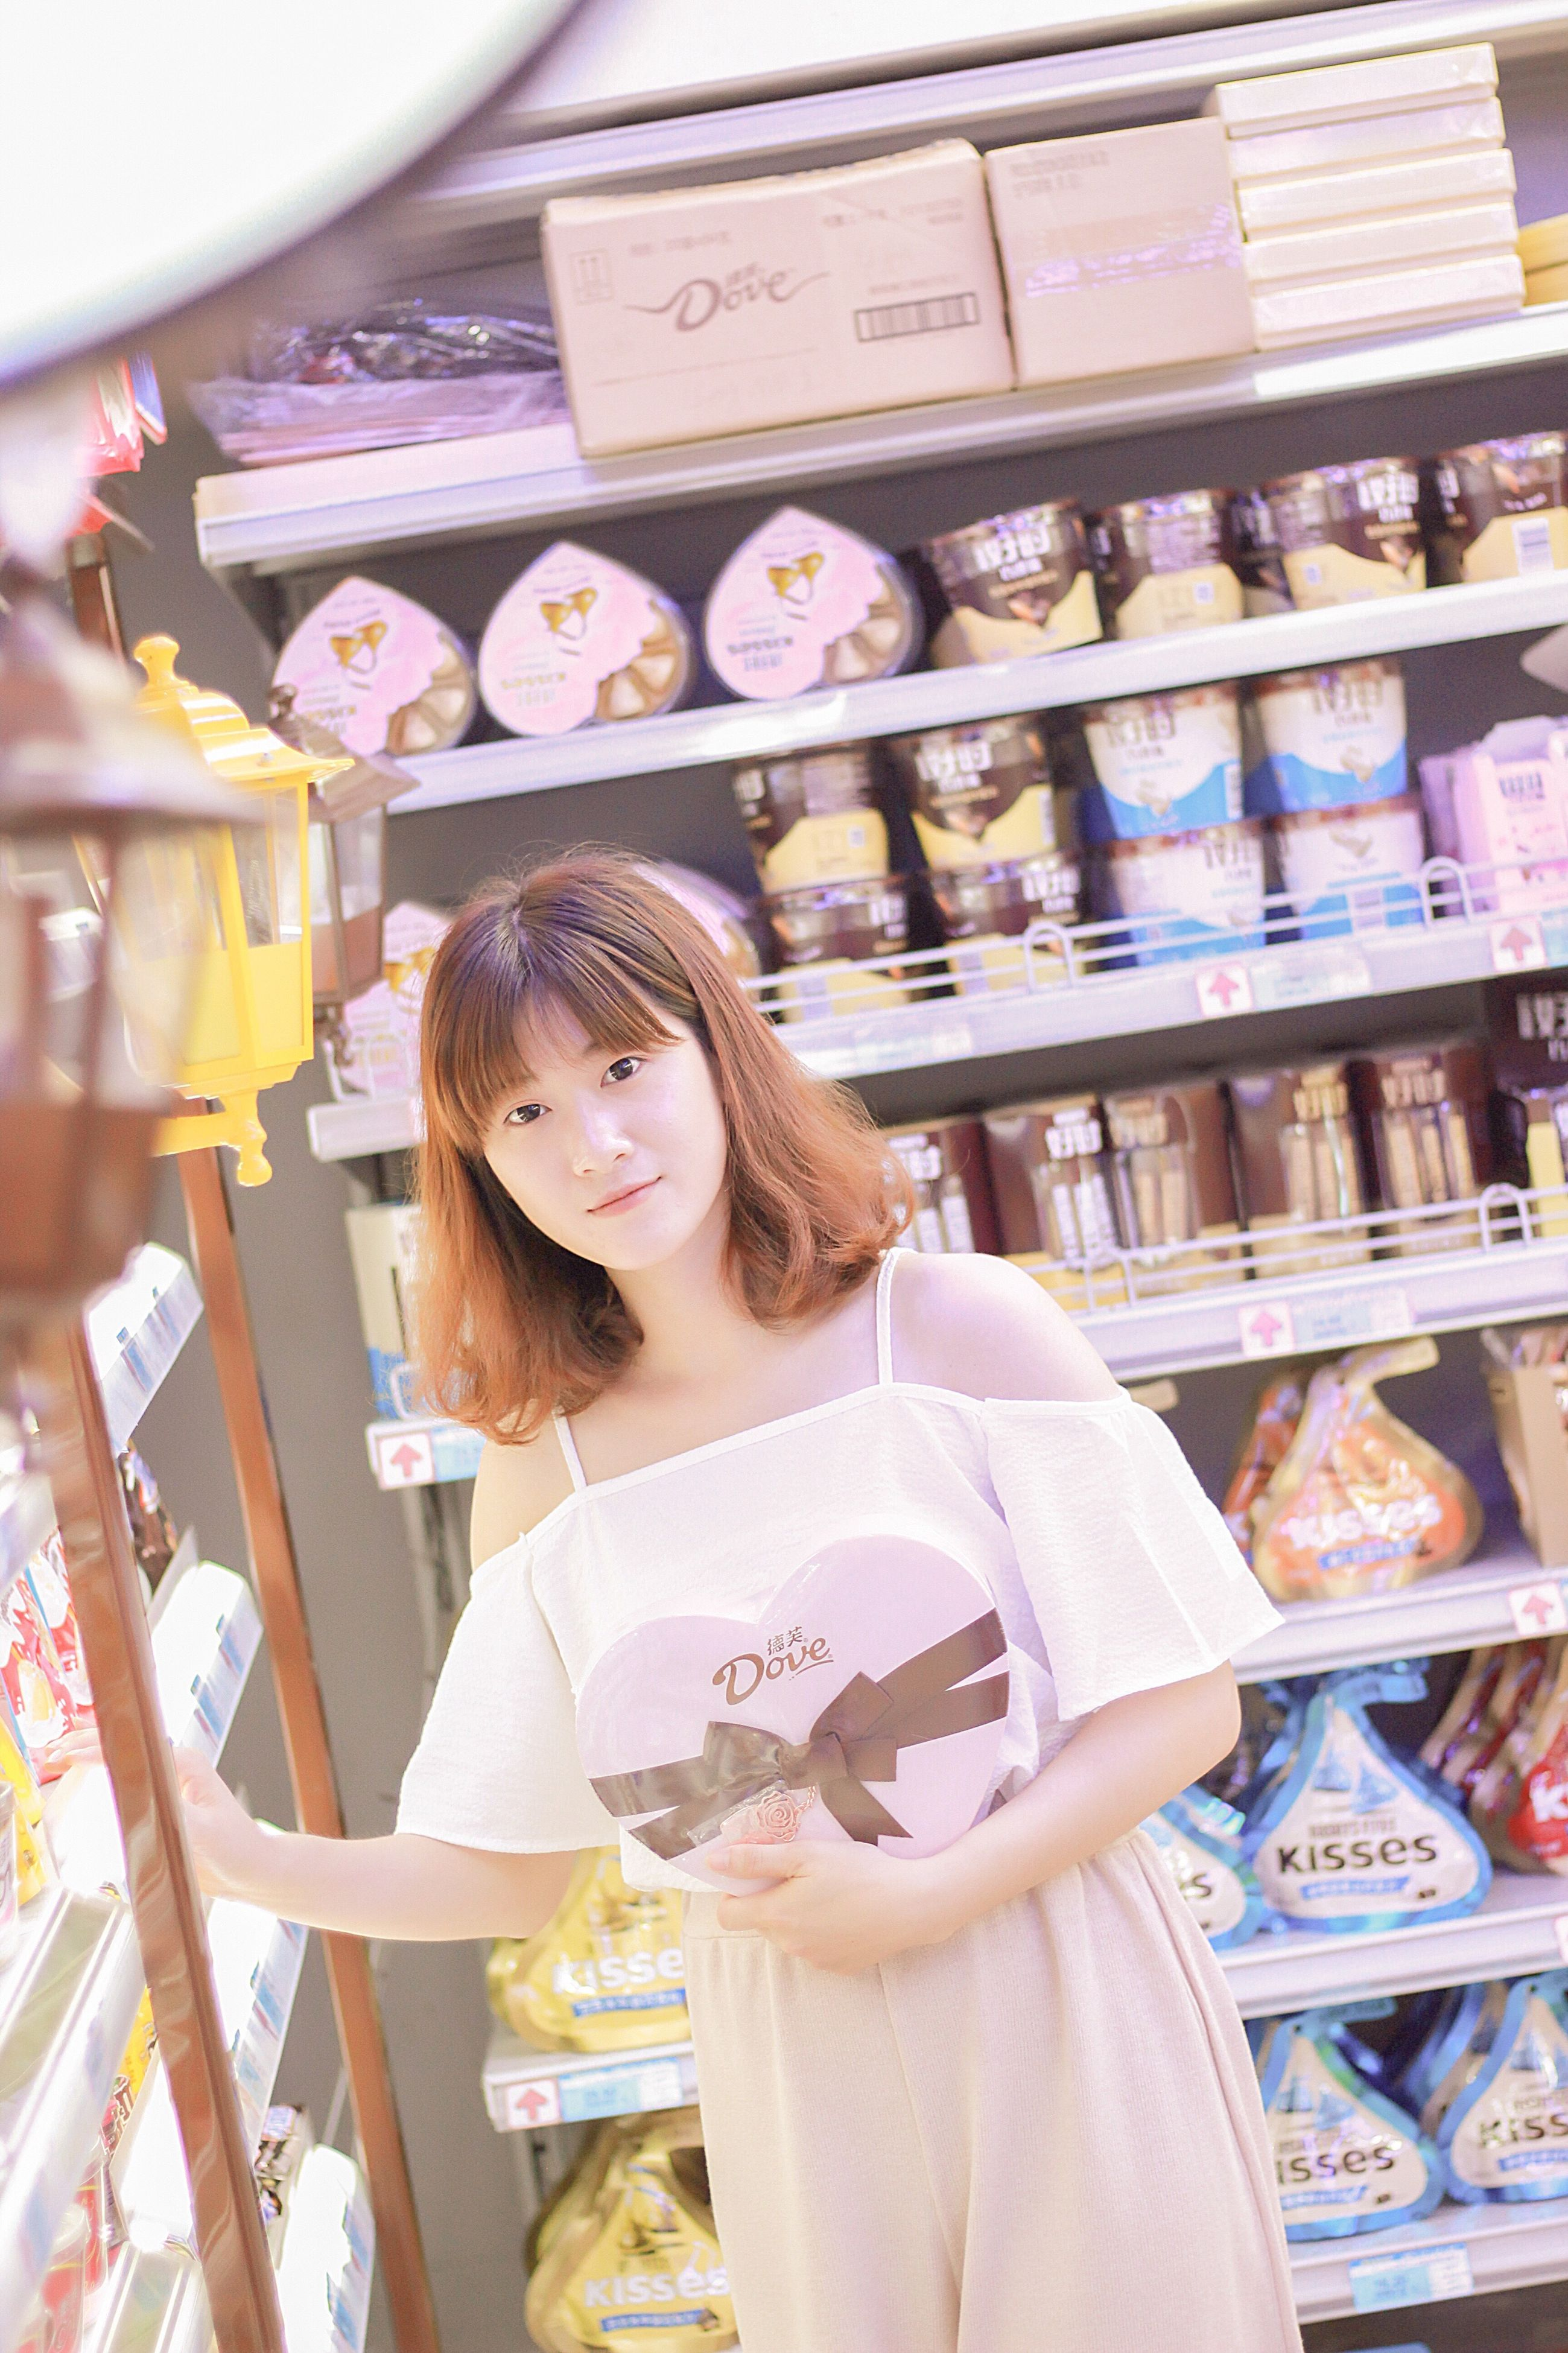 retail, one person, store, shelf, casual clothing, real people, indoors, choice, standing, front view, consumerism, medium-length hair, young adult, variation, lifestyles, young women, customer, day, supermarket, people